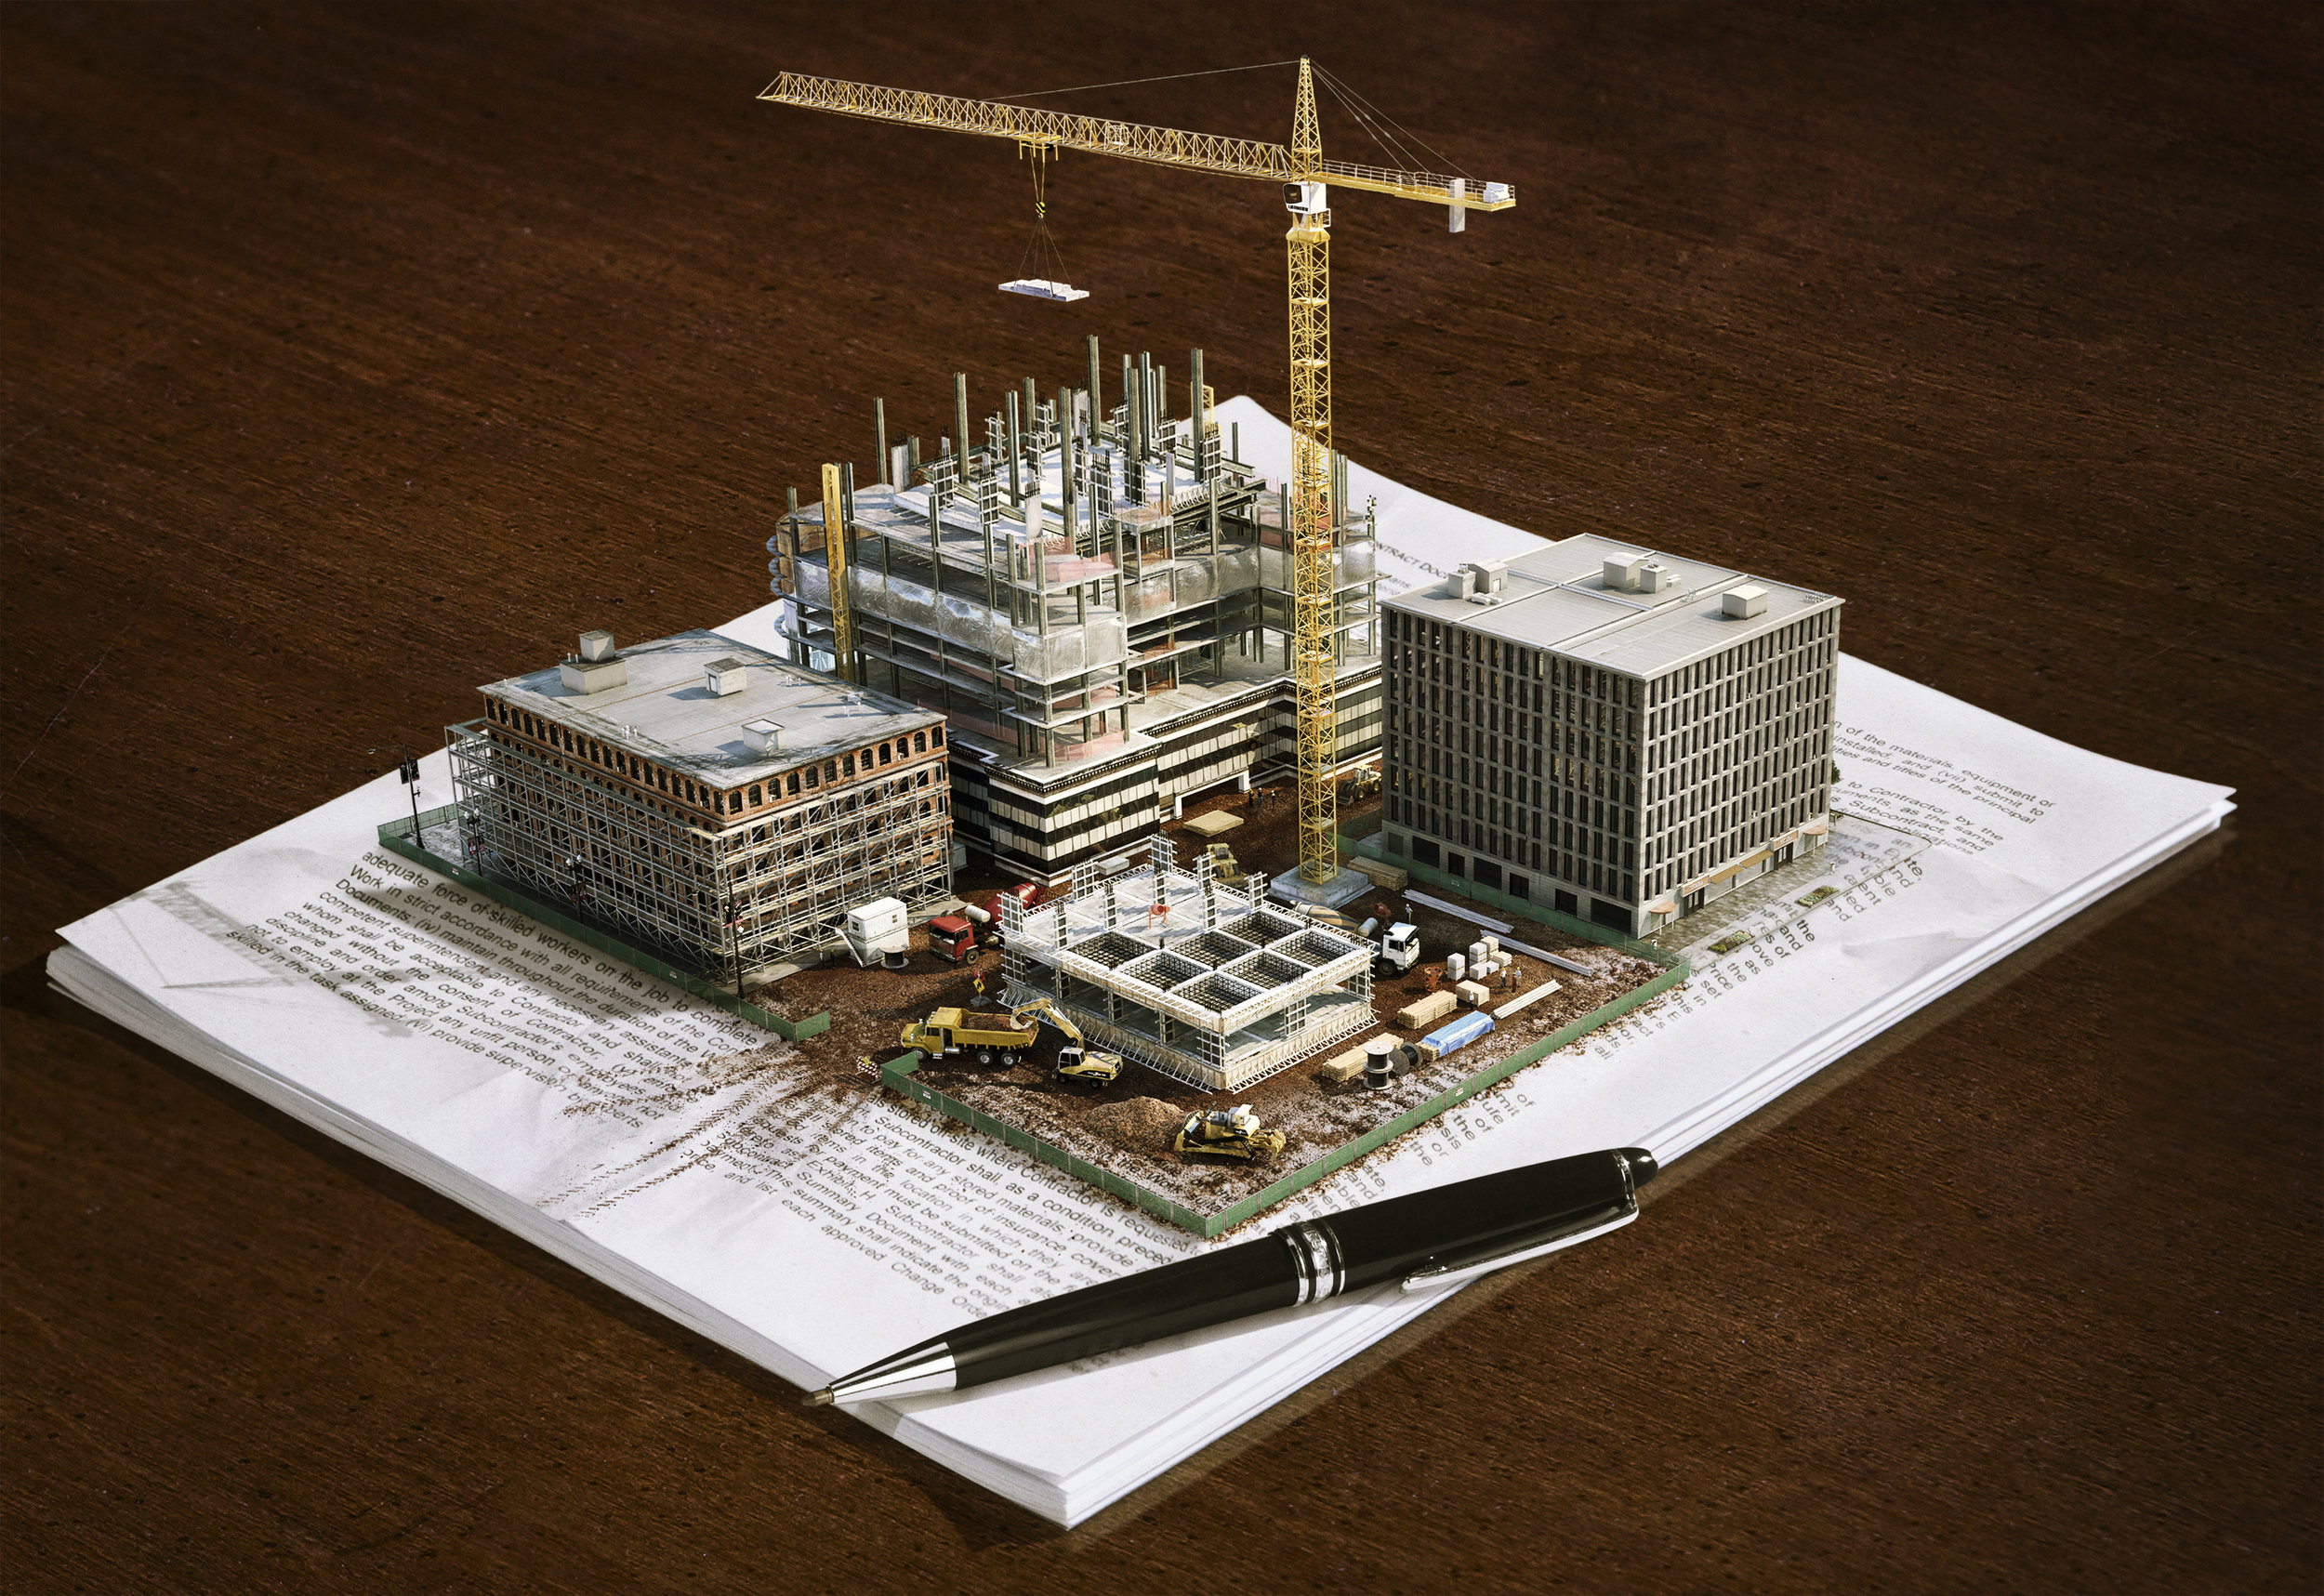 lawyer_constructionsite_@465.jpg